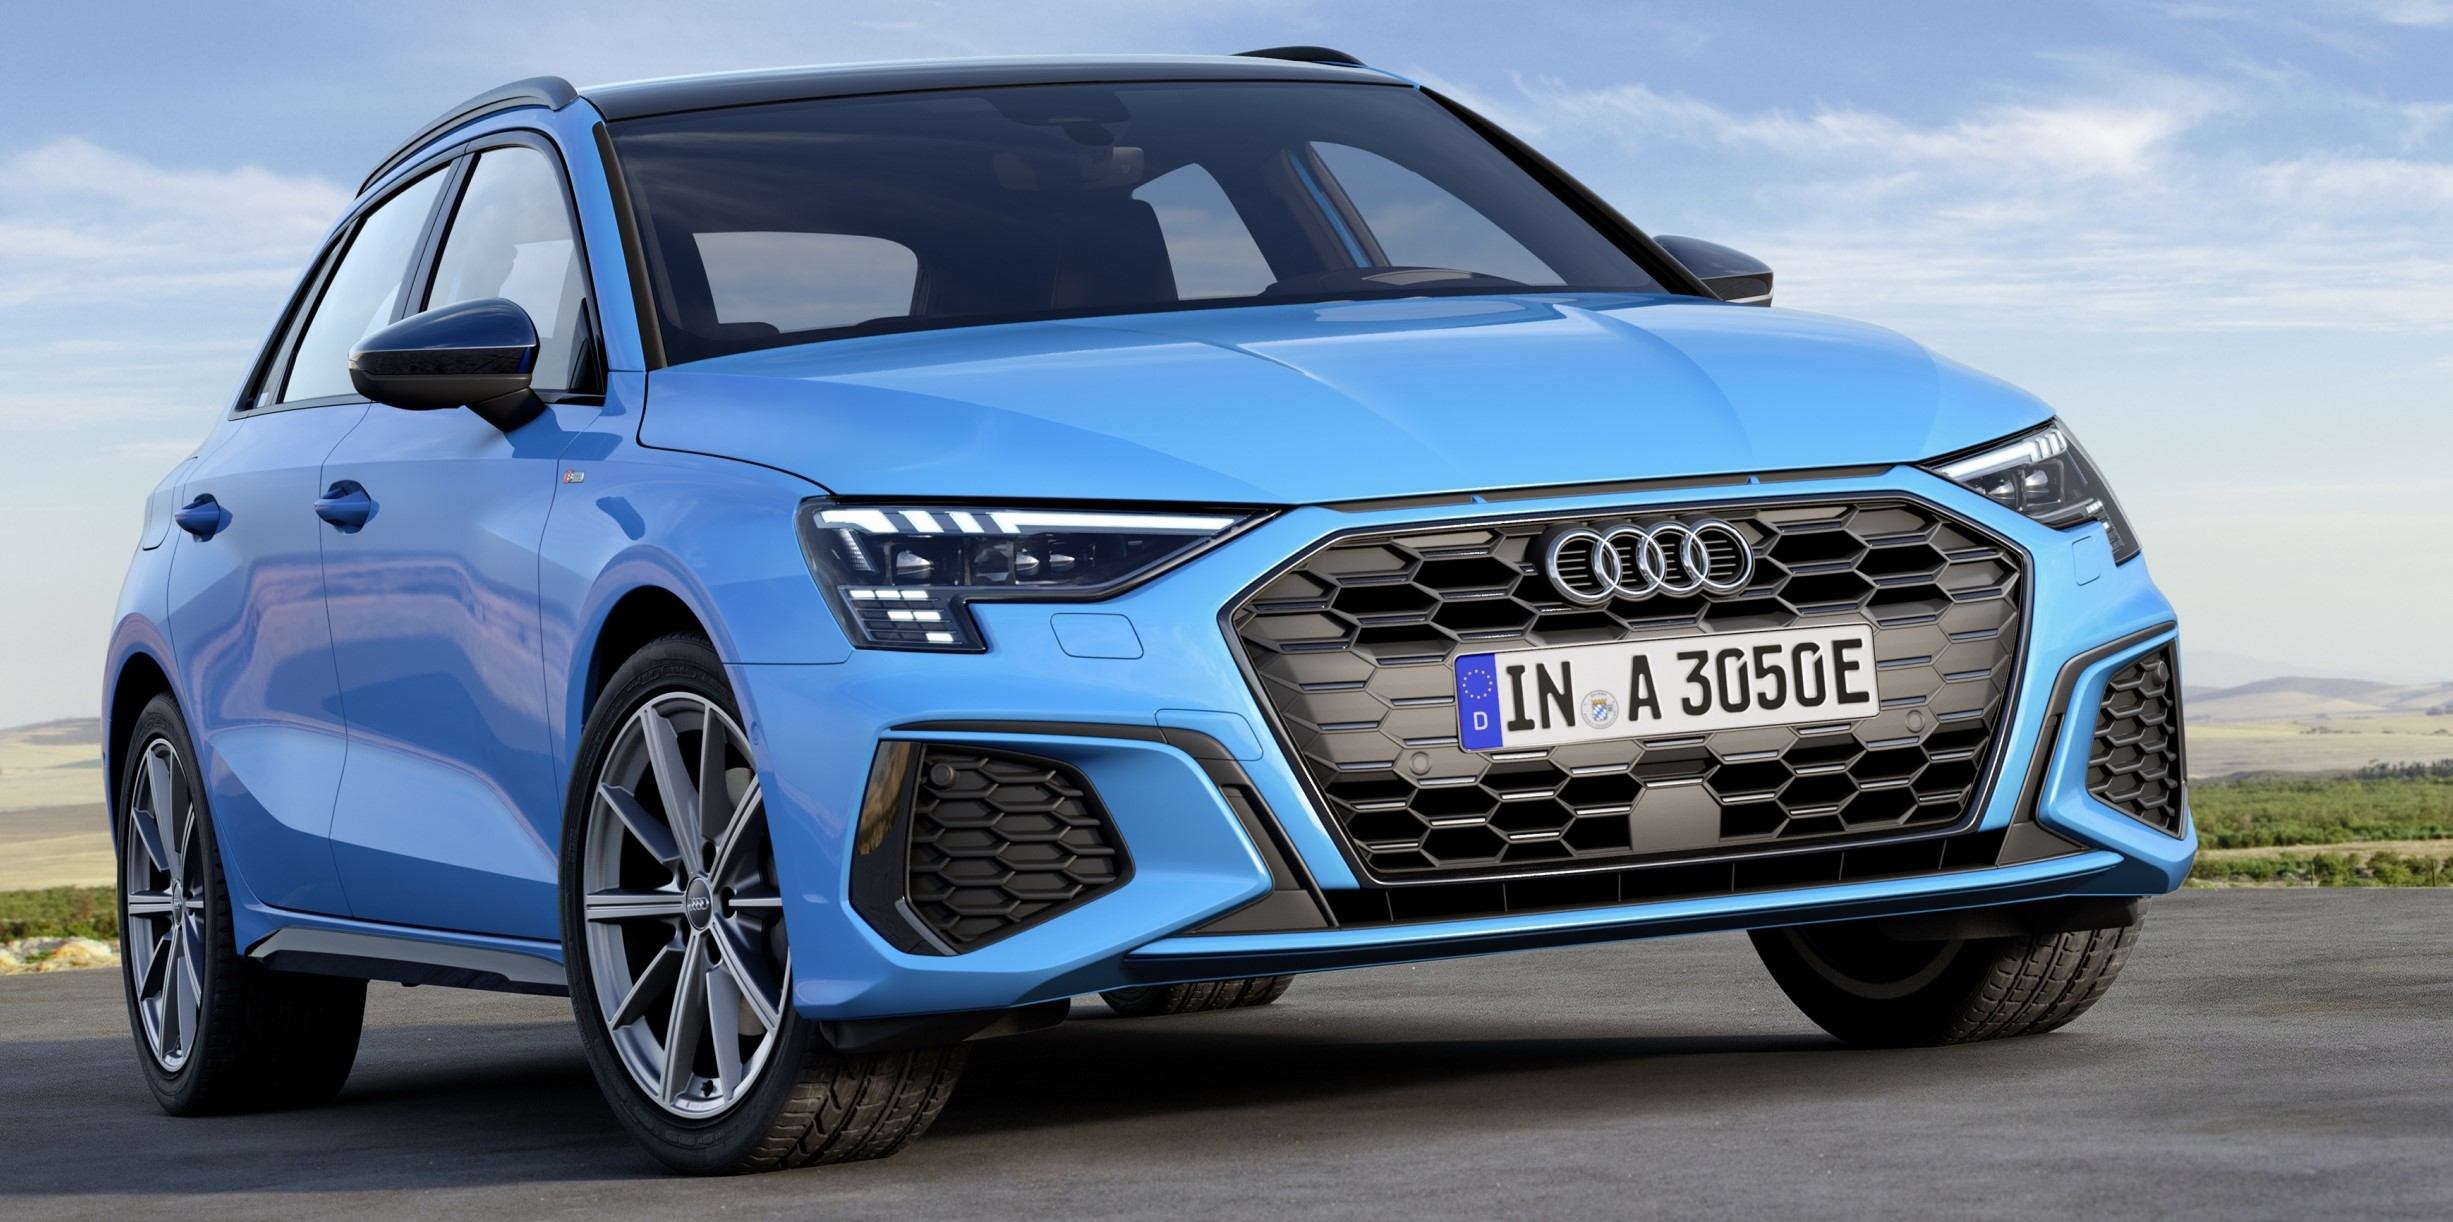 Our favourite plug-in hybrid cars to lease